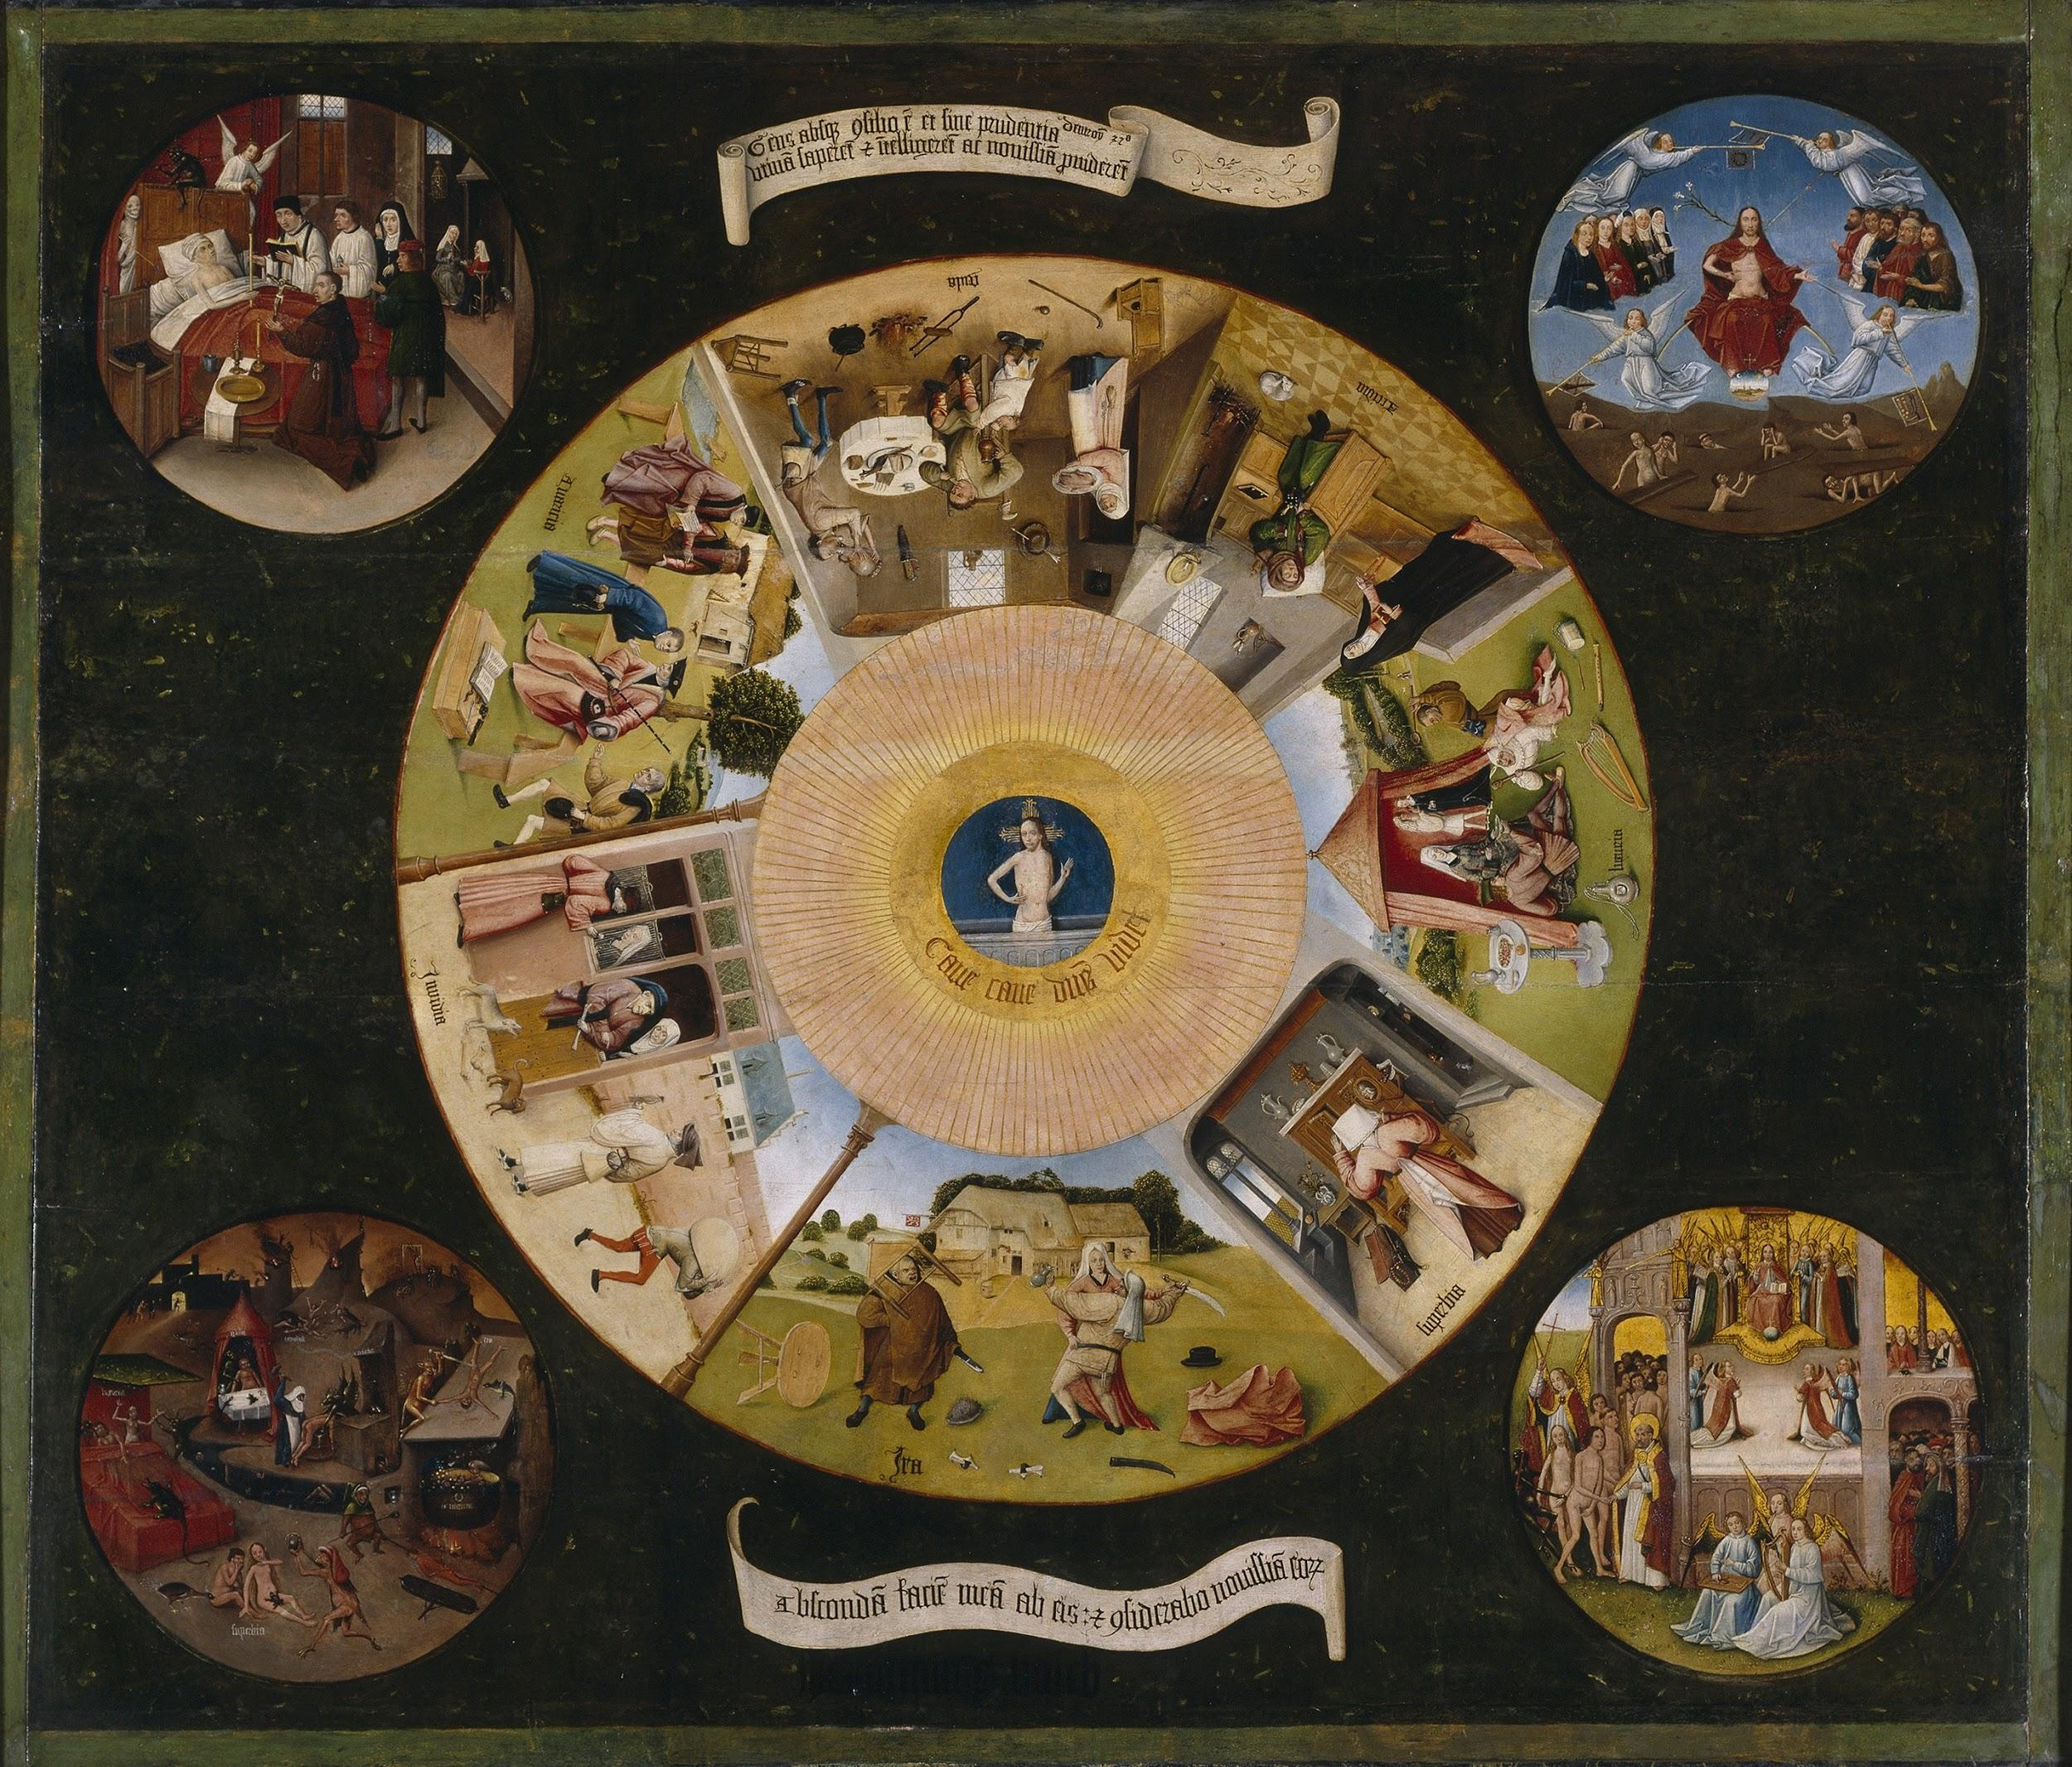 Jheronimus Bosch (1440/1460-1516),<em> The Seven Deadly Sins and the Four Last Things</em>, ca. 1500, Museo Nacional del Prado, Madrid